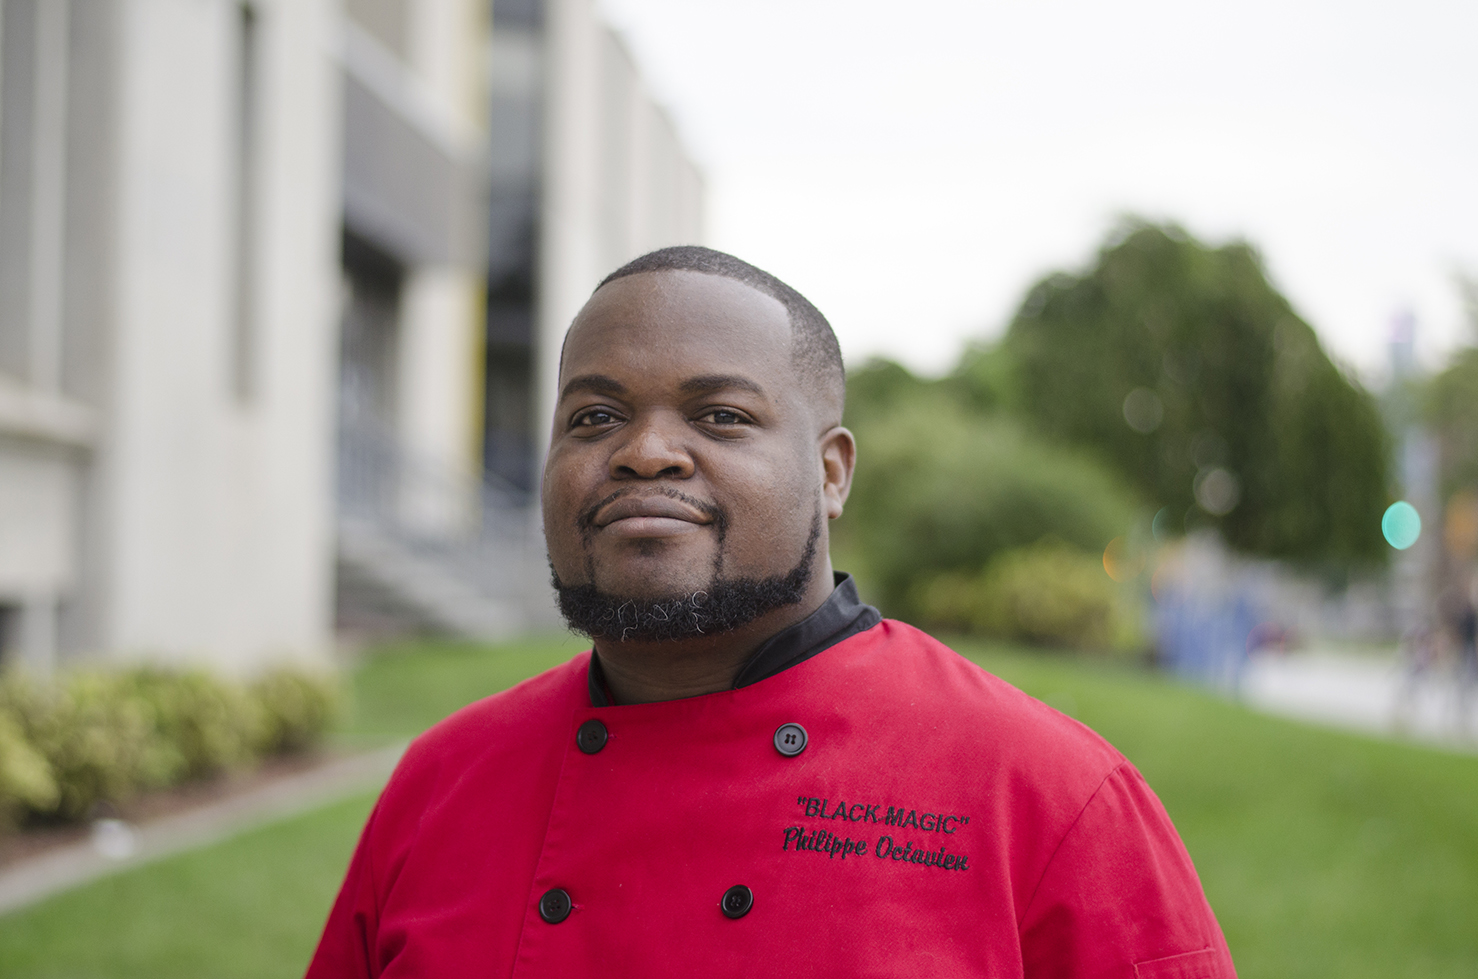 Chef Philippe Octavien of Black Magic Culinary Creations